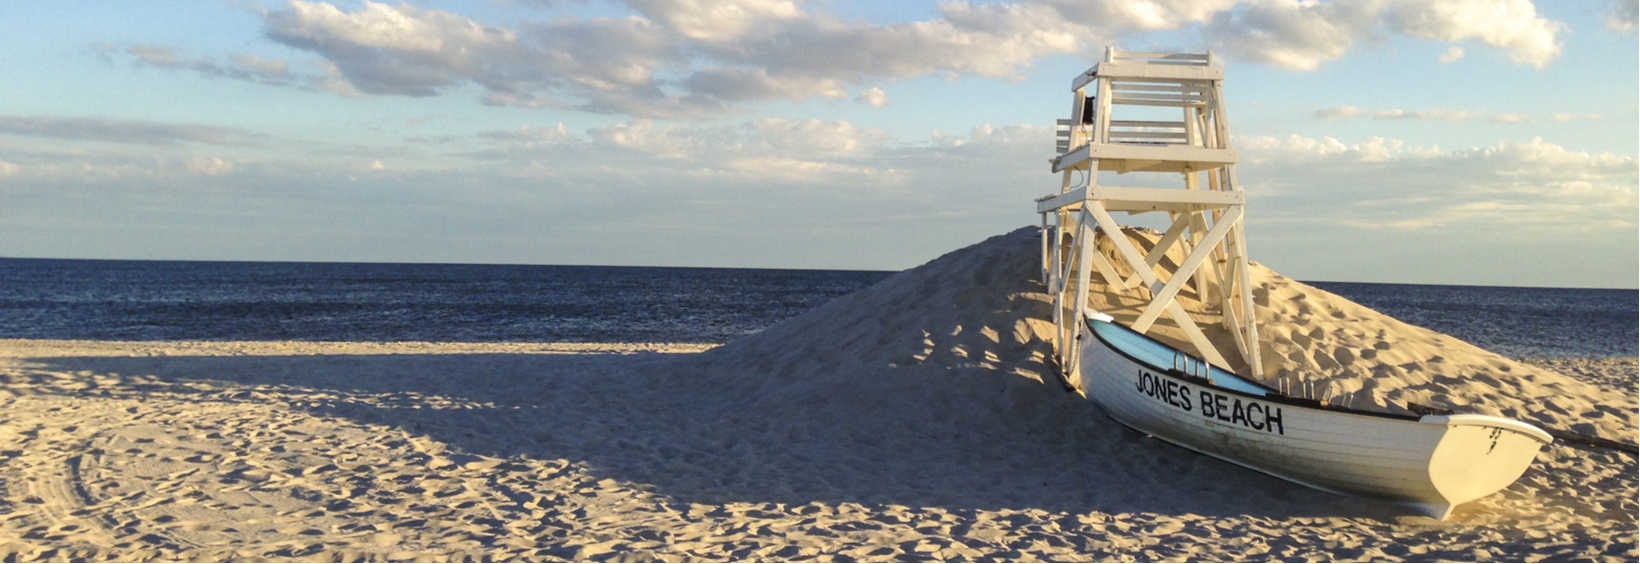 The Top 10 Beaches for Families to Visit in NYC, Long Island, and Westchester